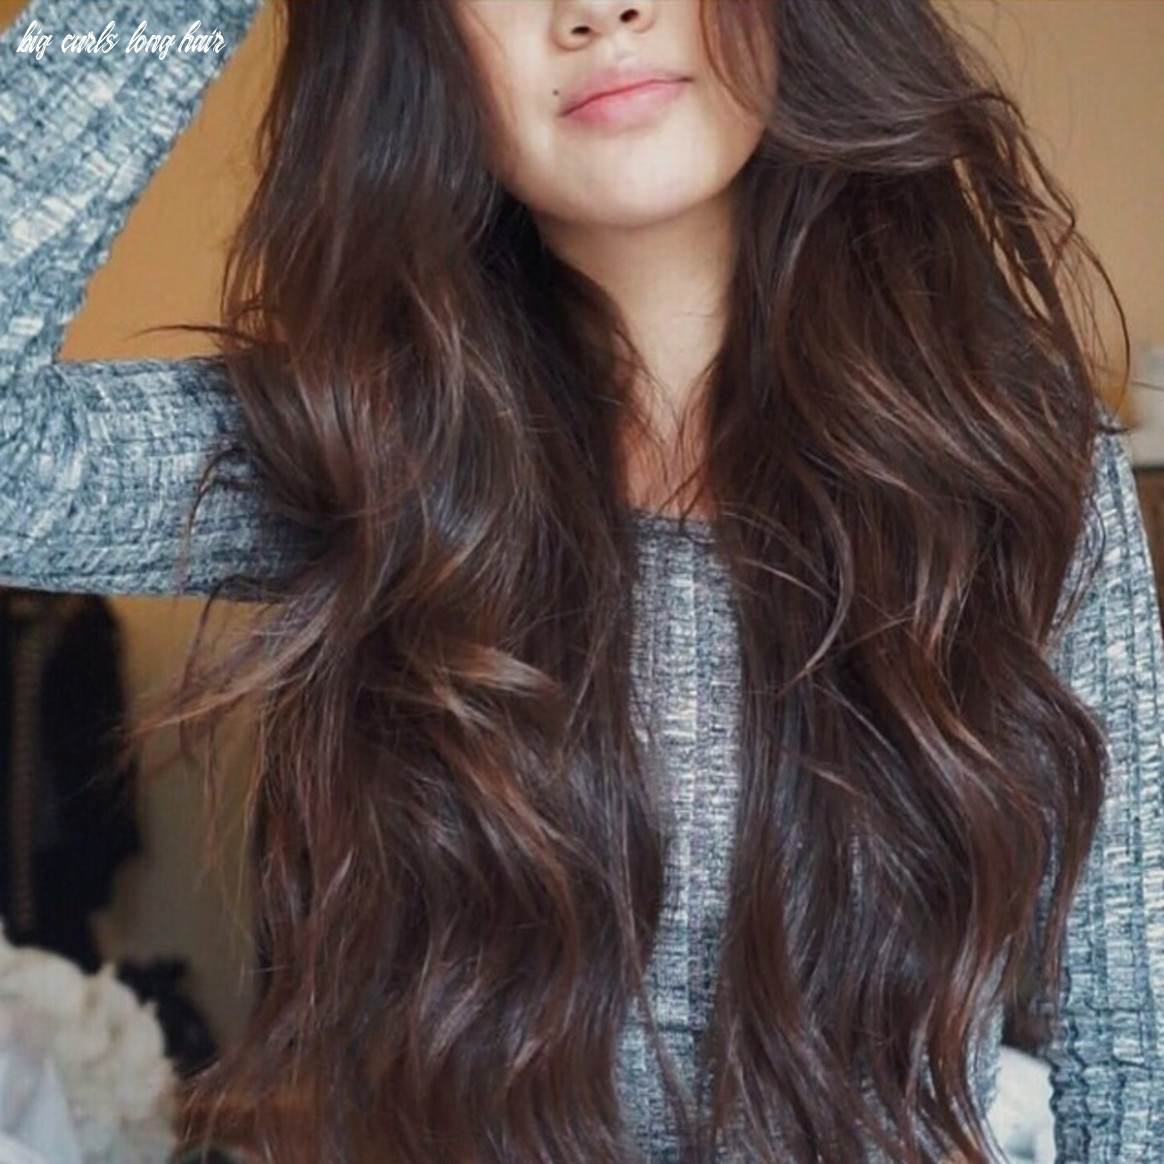 How to get loose curls fashionista big curls long hair